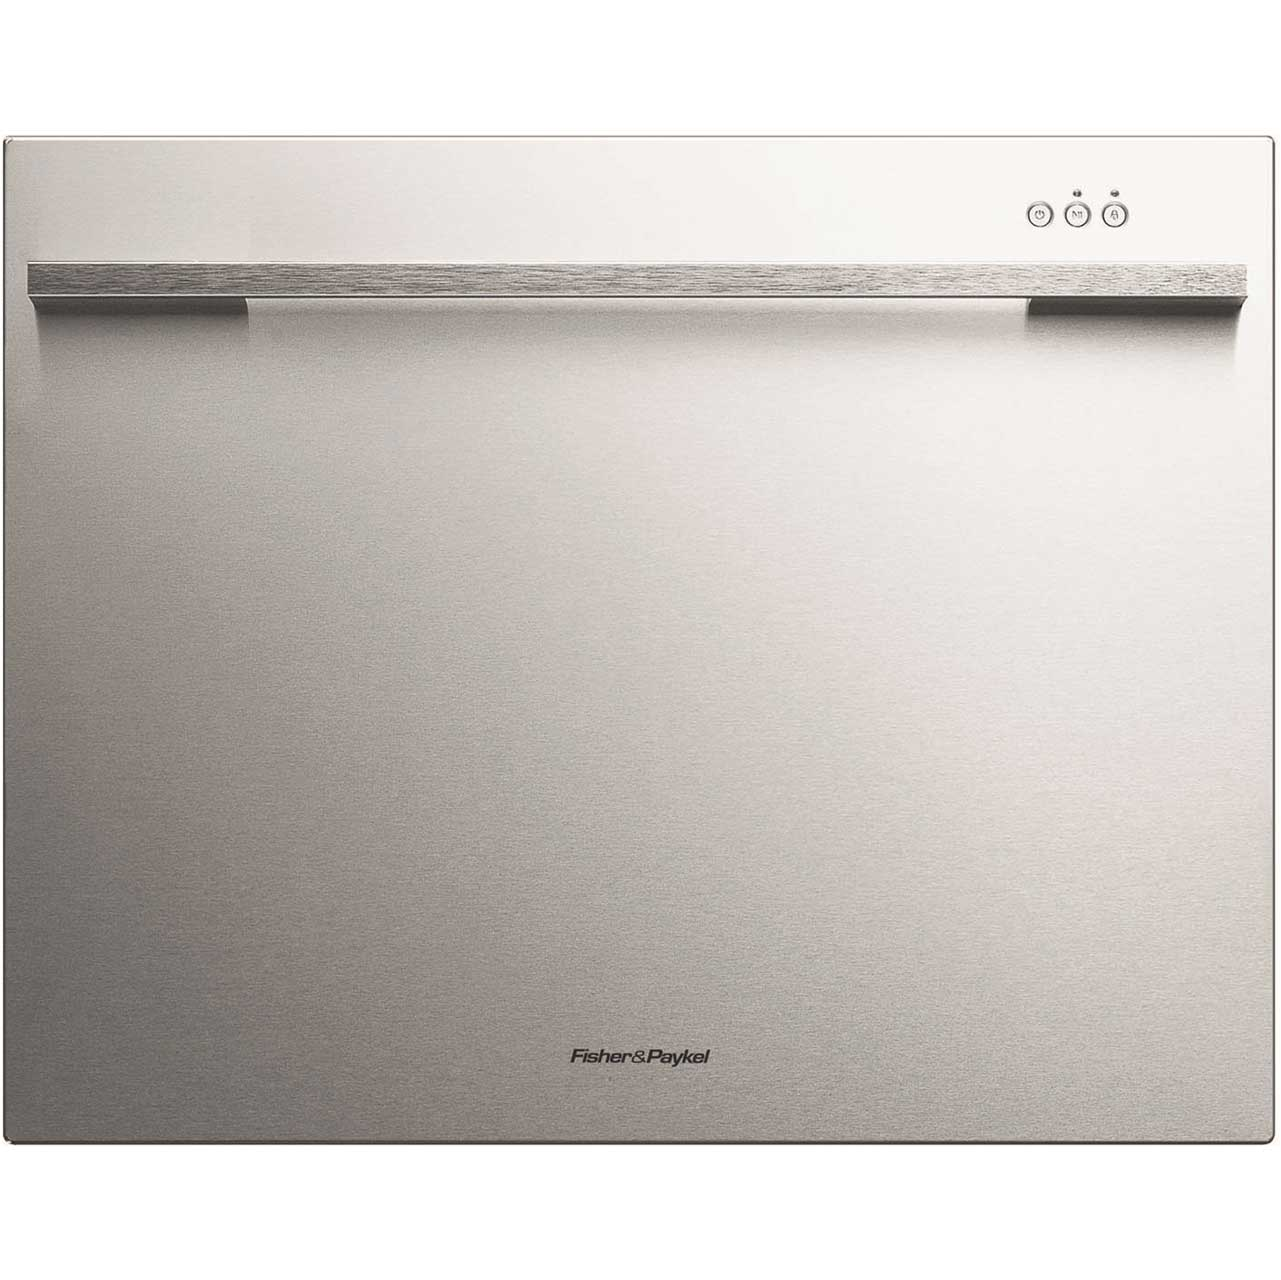 Fisher & Paykel DishDrawer? DD60SDFHTX7 Integrated Dishwasher in Stainless Steel